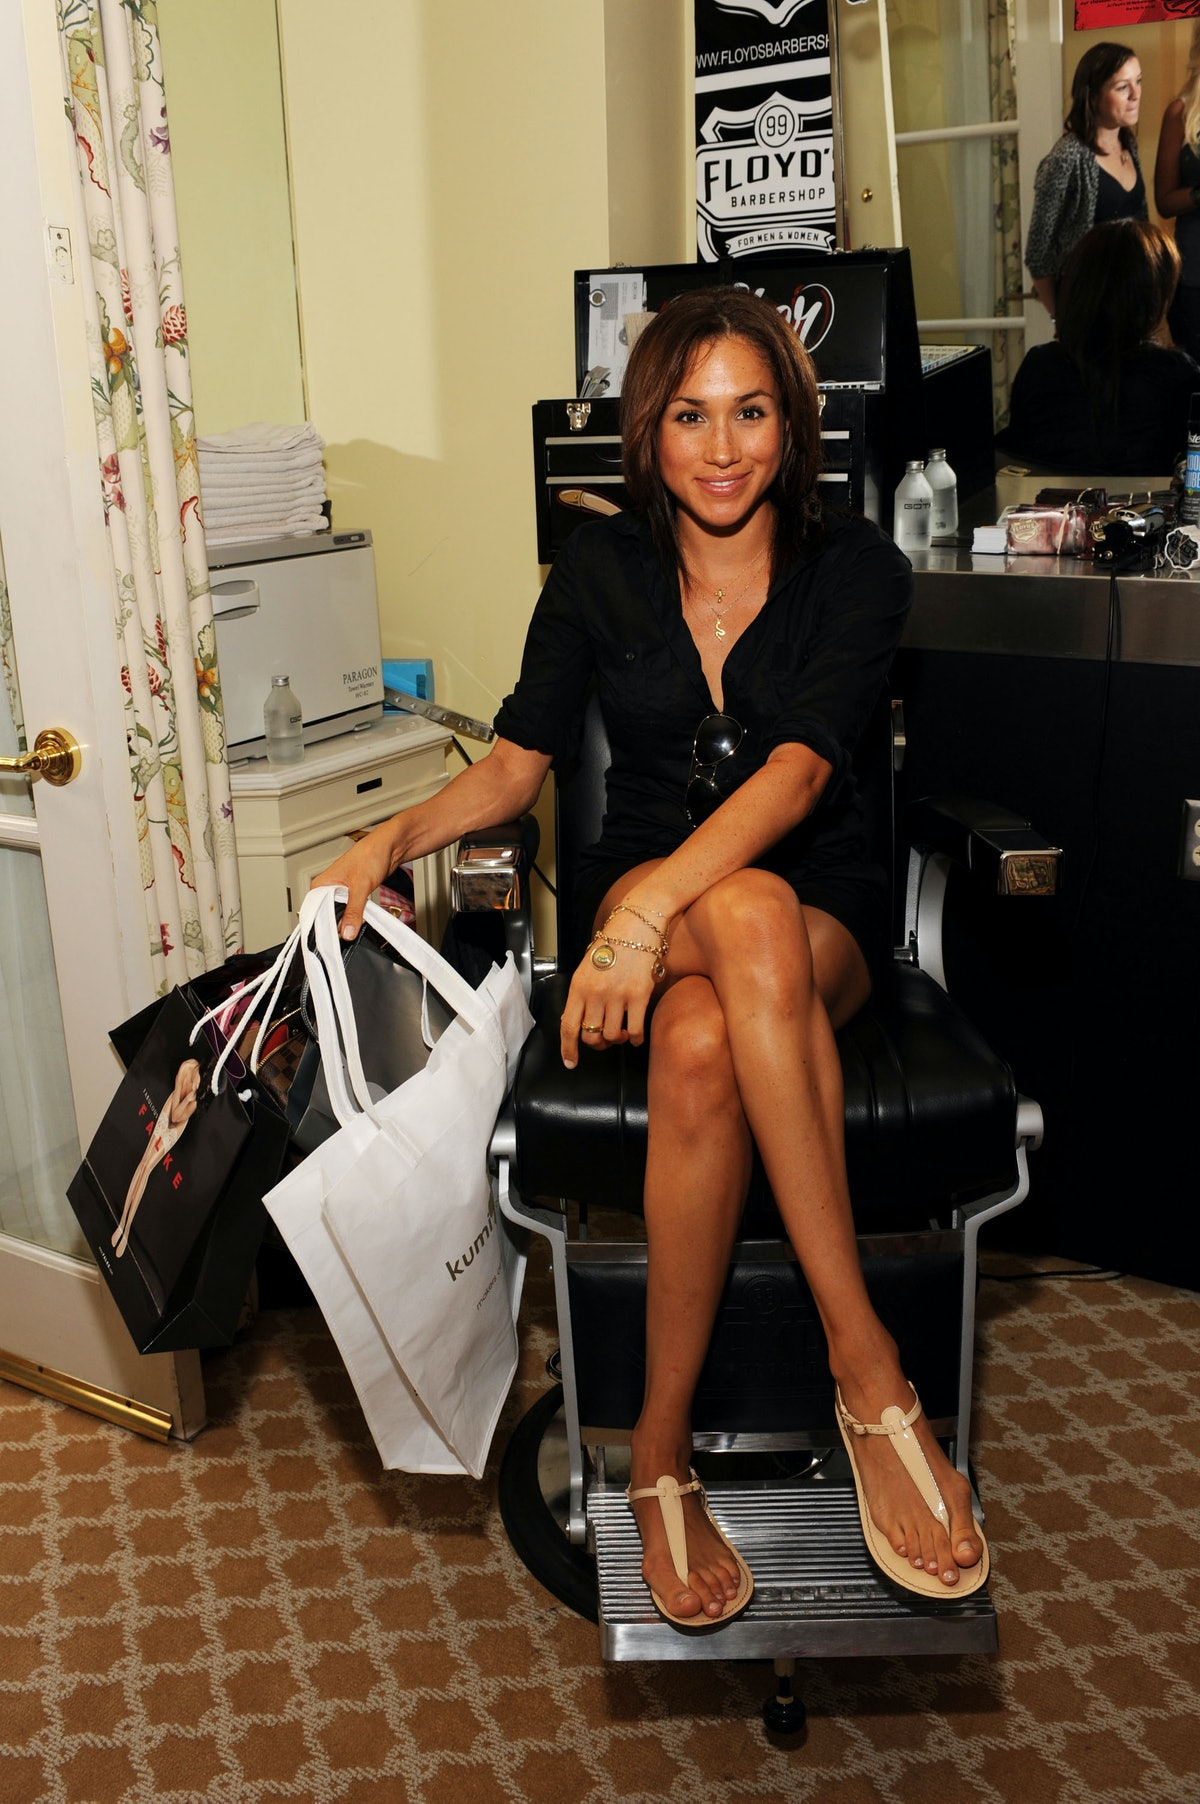 Shown here in a casual black shirt and sandals while sitting in a salon chair at an event, Markle at...